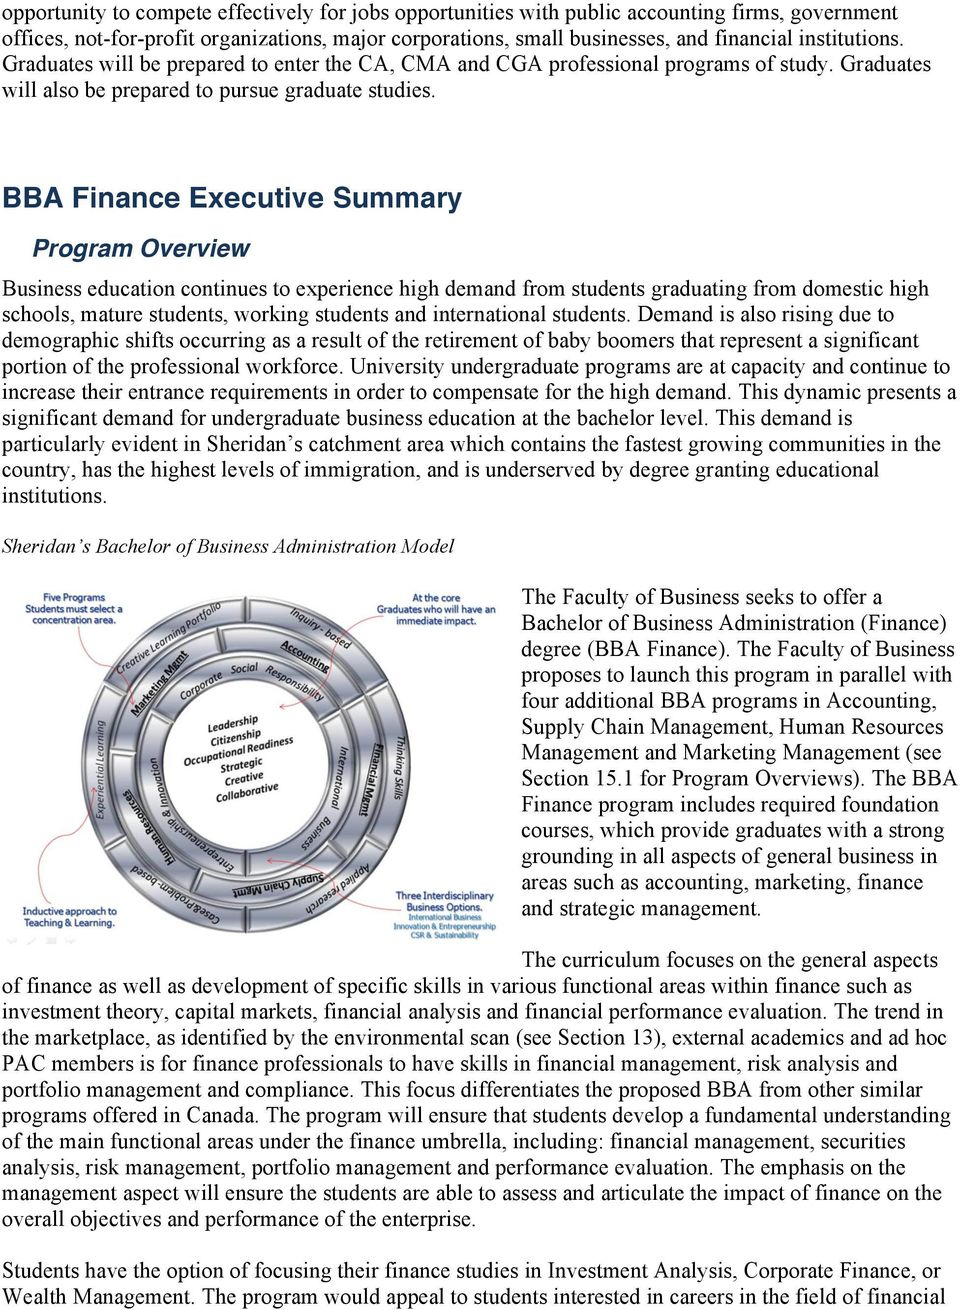 BBA Finance Executive Summary Program Overview Business education continues to experience high demand from students graduating from domestic high schools, mature students, working students and